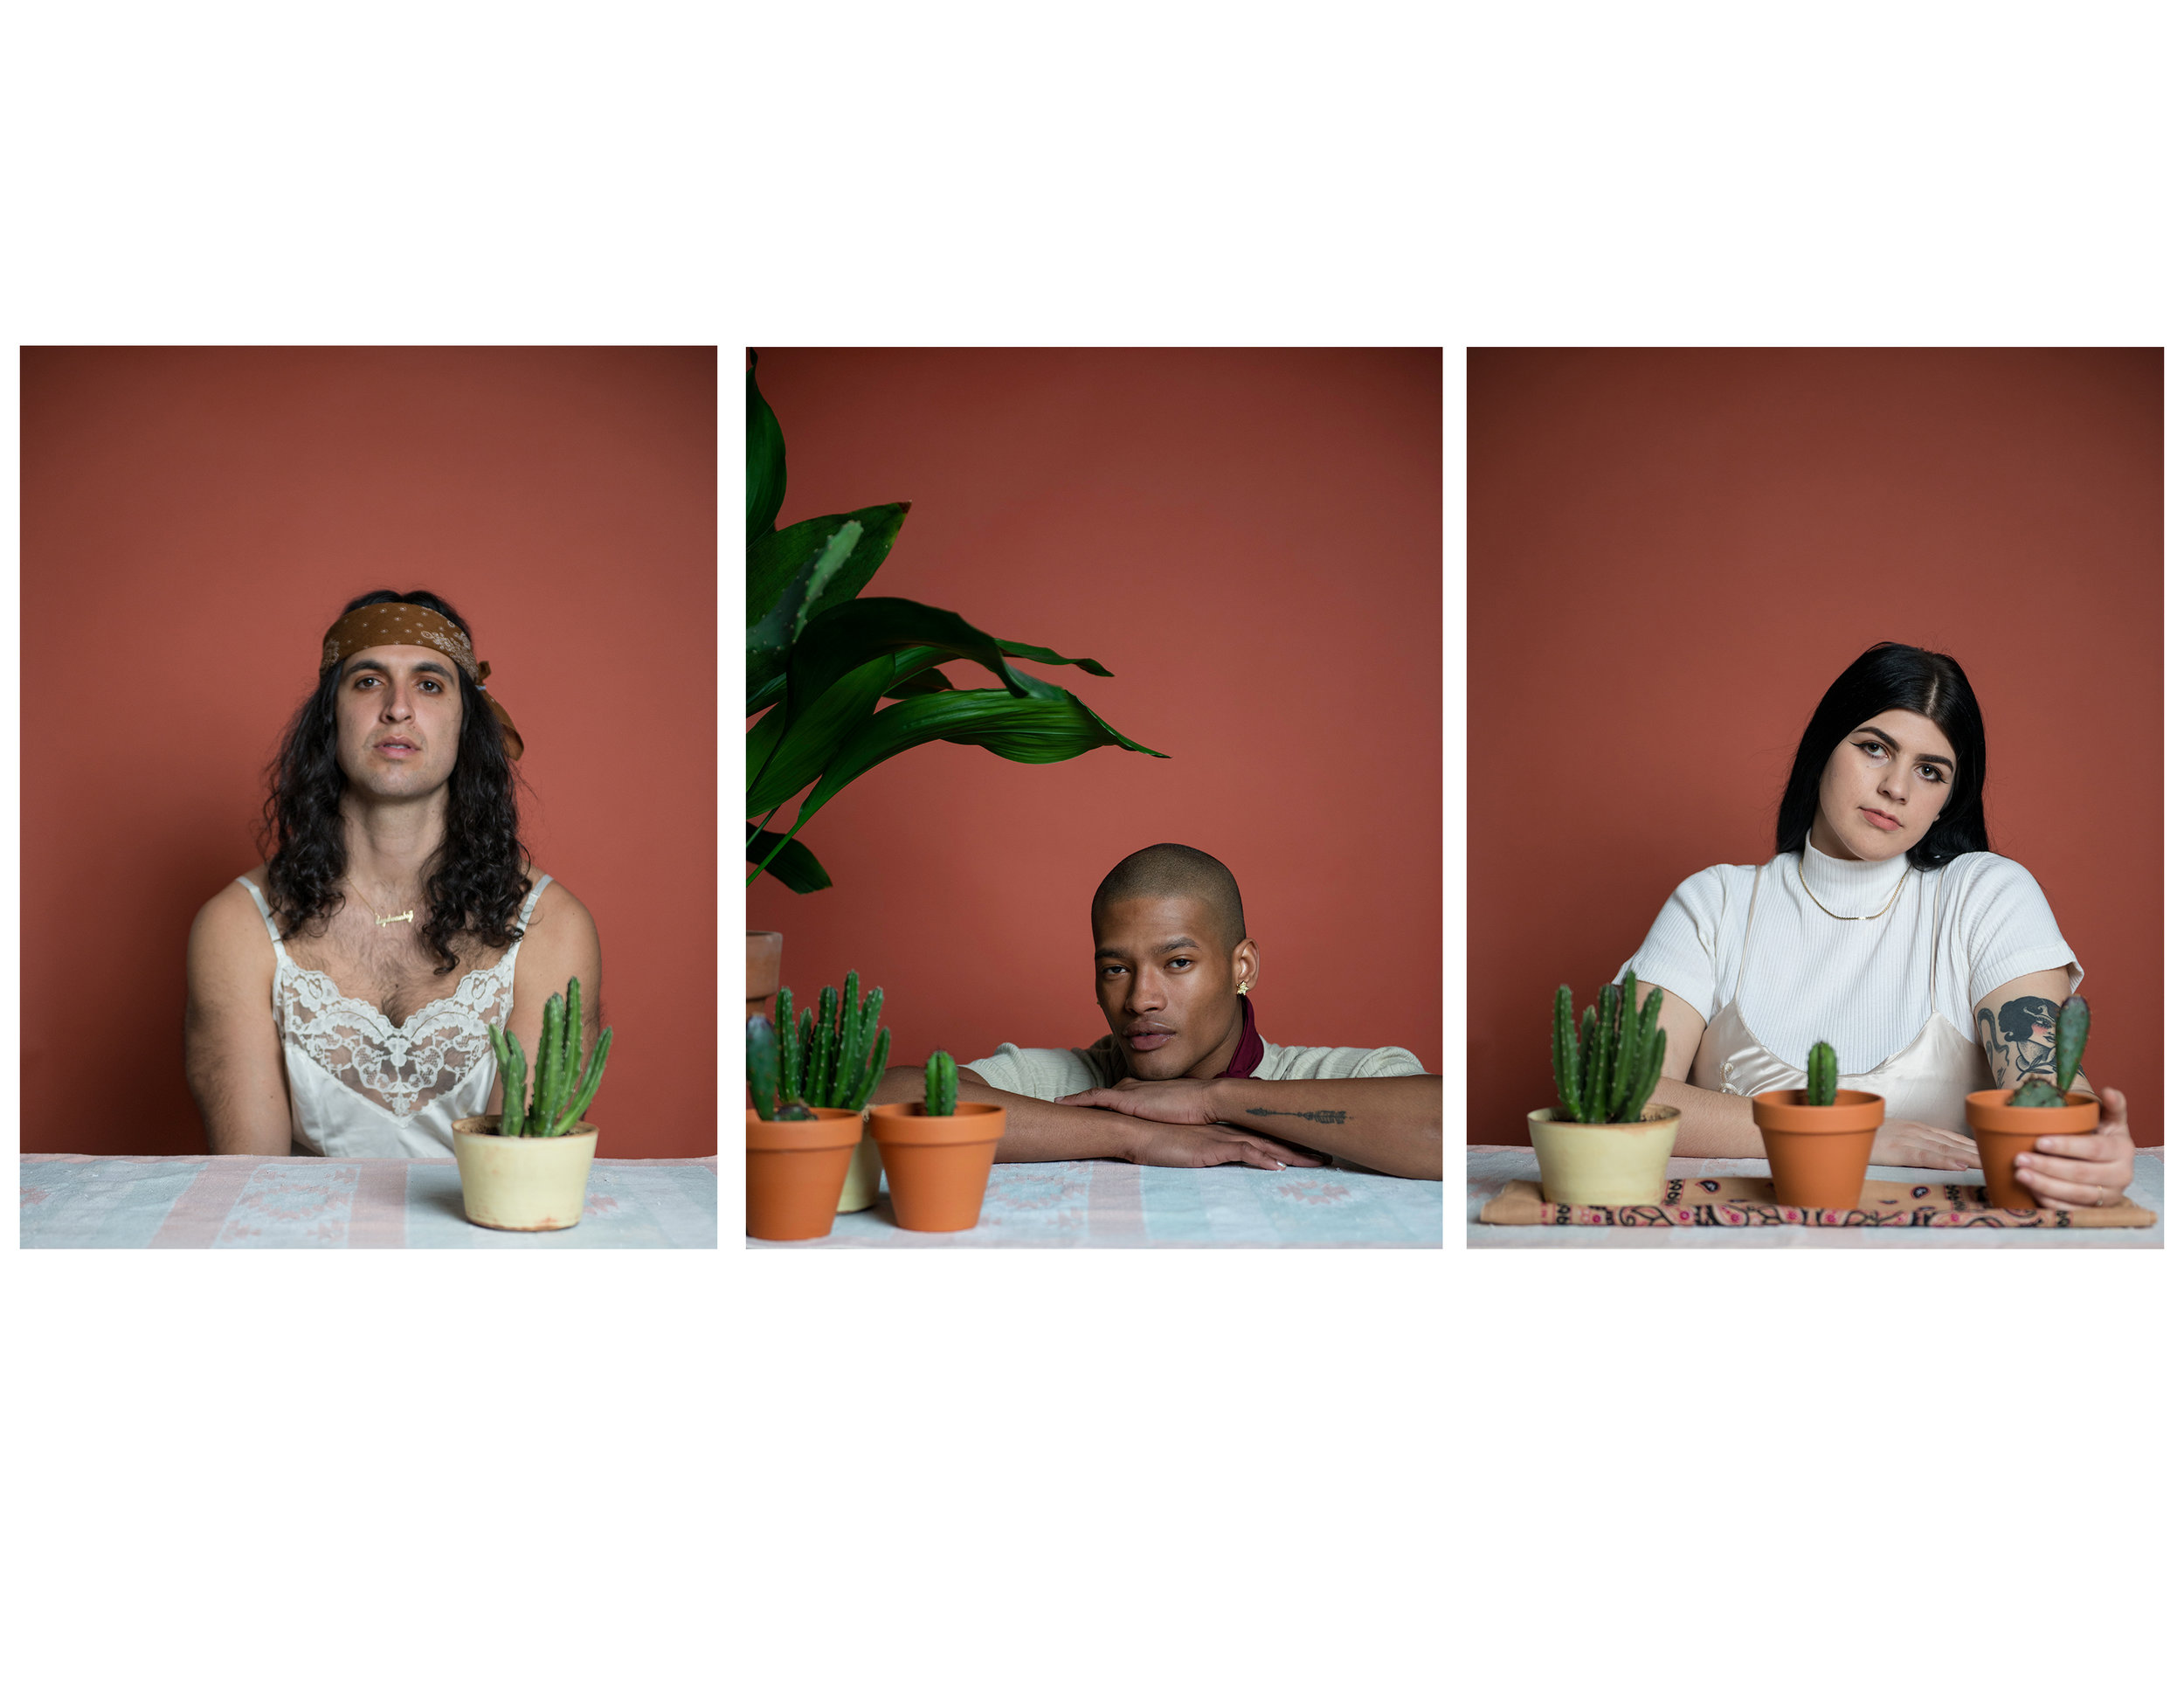 Photography by Brandon Soder